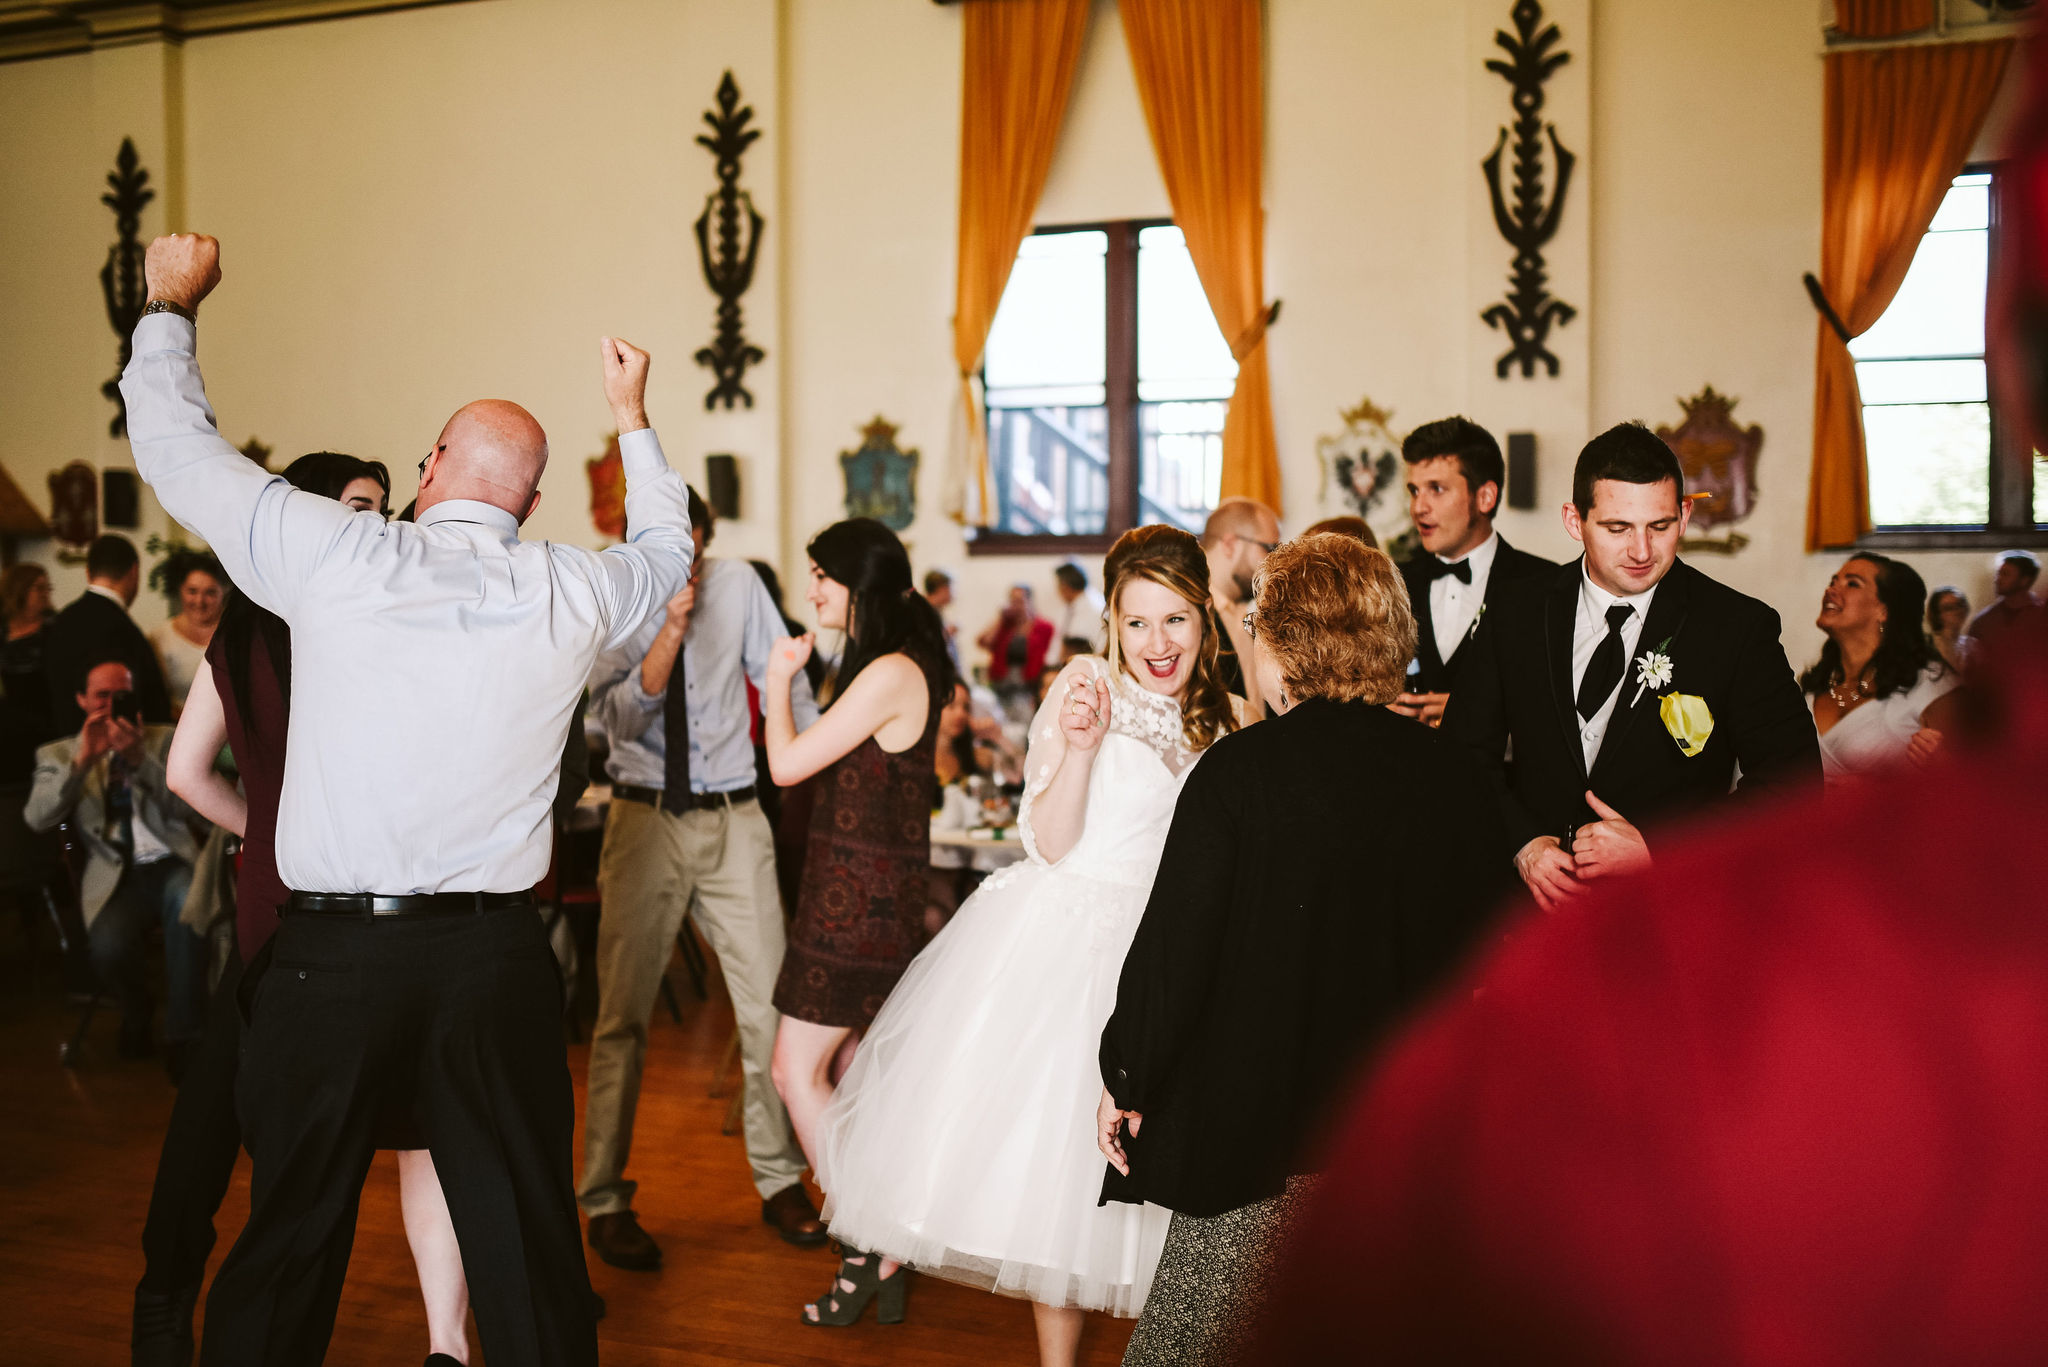 Baltimore, Lithuanian Dance Hall, Maryland Wedding Photographer, Vintage, Classic, 50s Style, Bride and Groom on the Dance Floor with Friends, Candid Photo